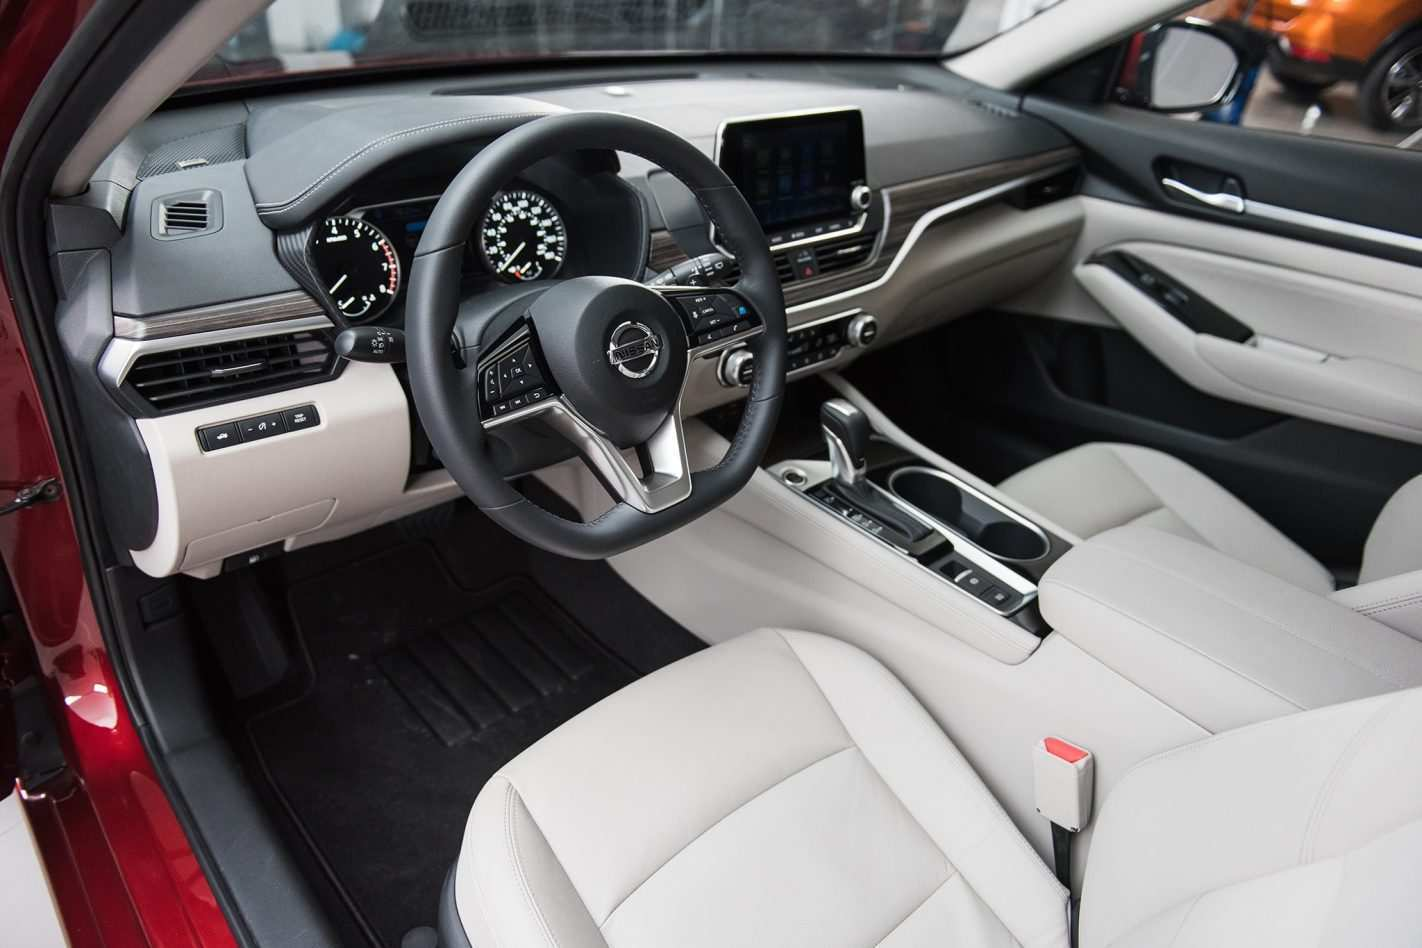 99 Gallery of The 2019 Nissan Altima Interior Redesign And Concept Reviews with The 2019 Nissan Altima Interior Redesign And Concept